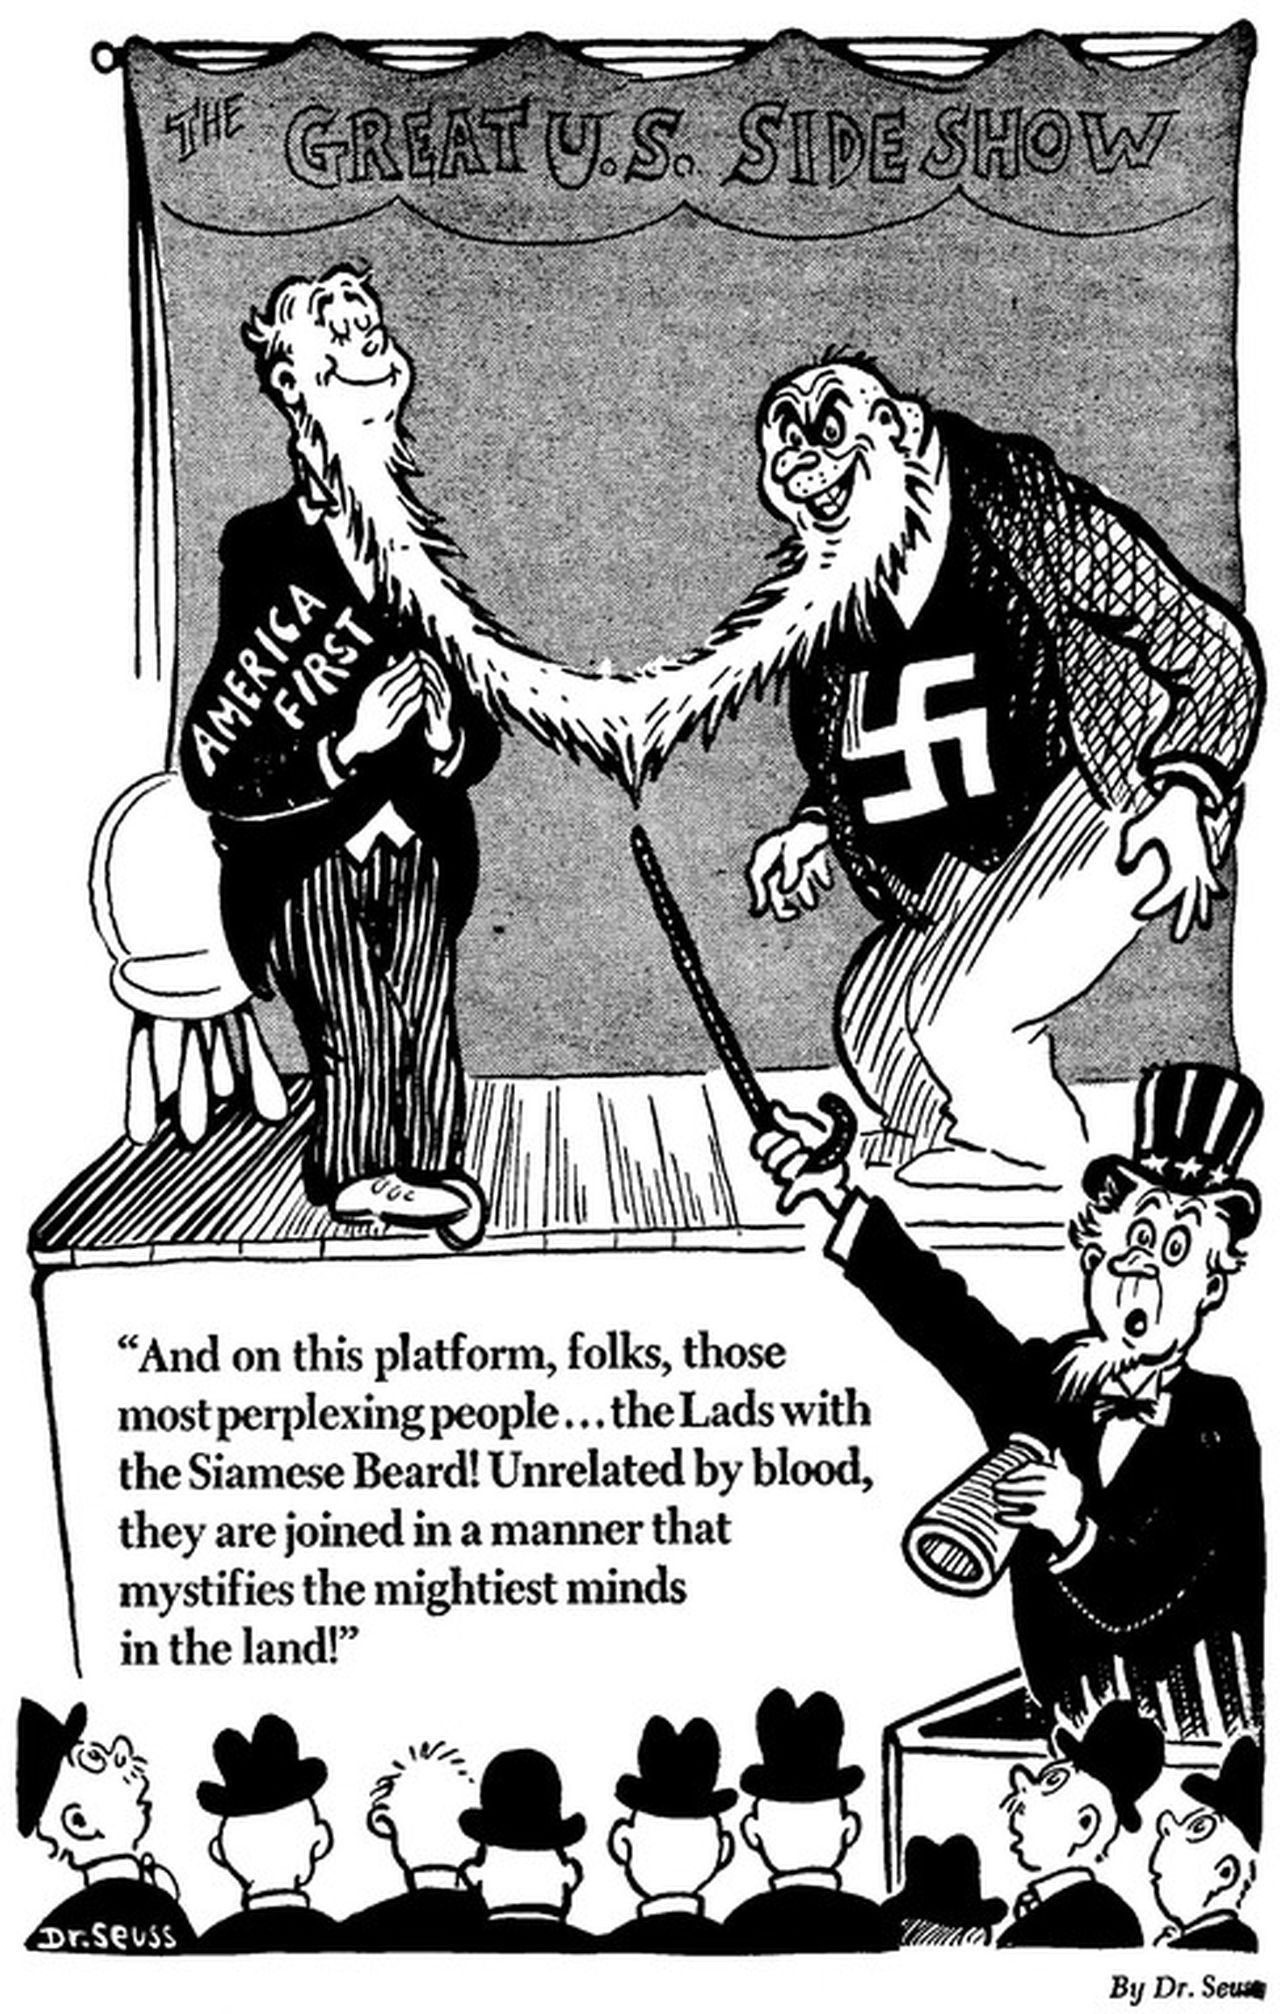 Dr. Seuss on America First 1